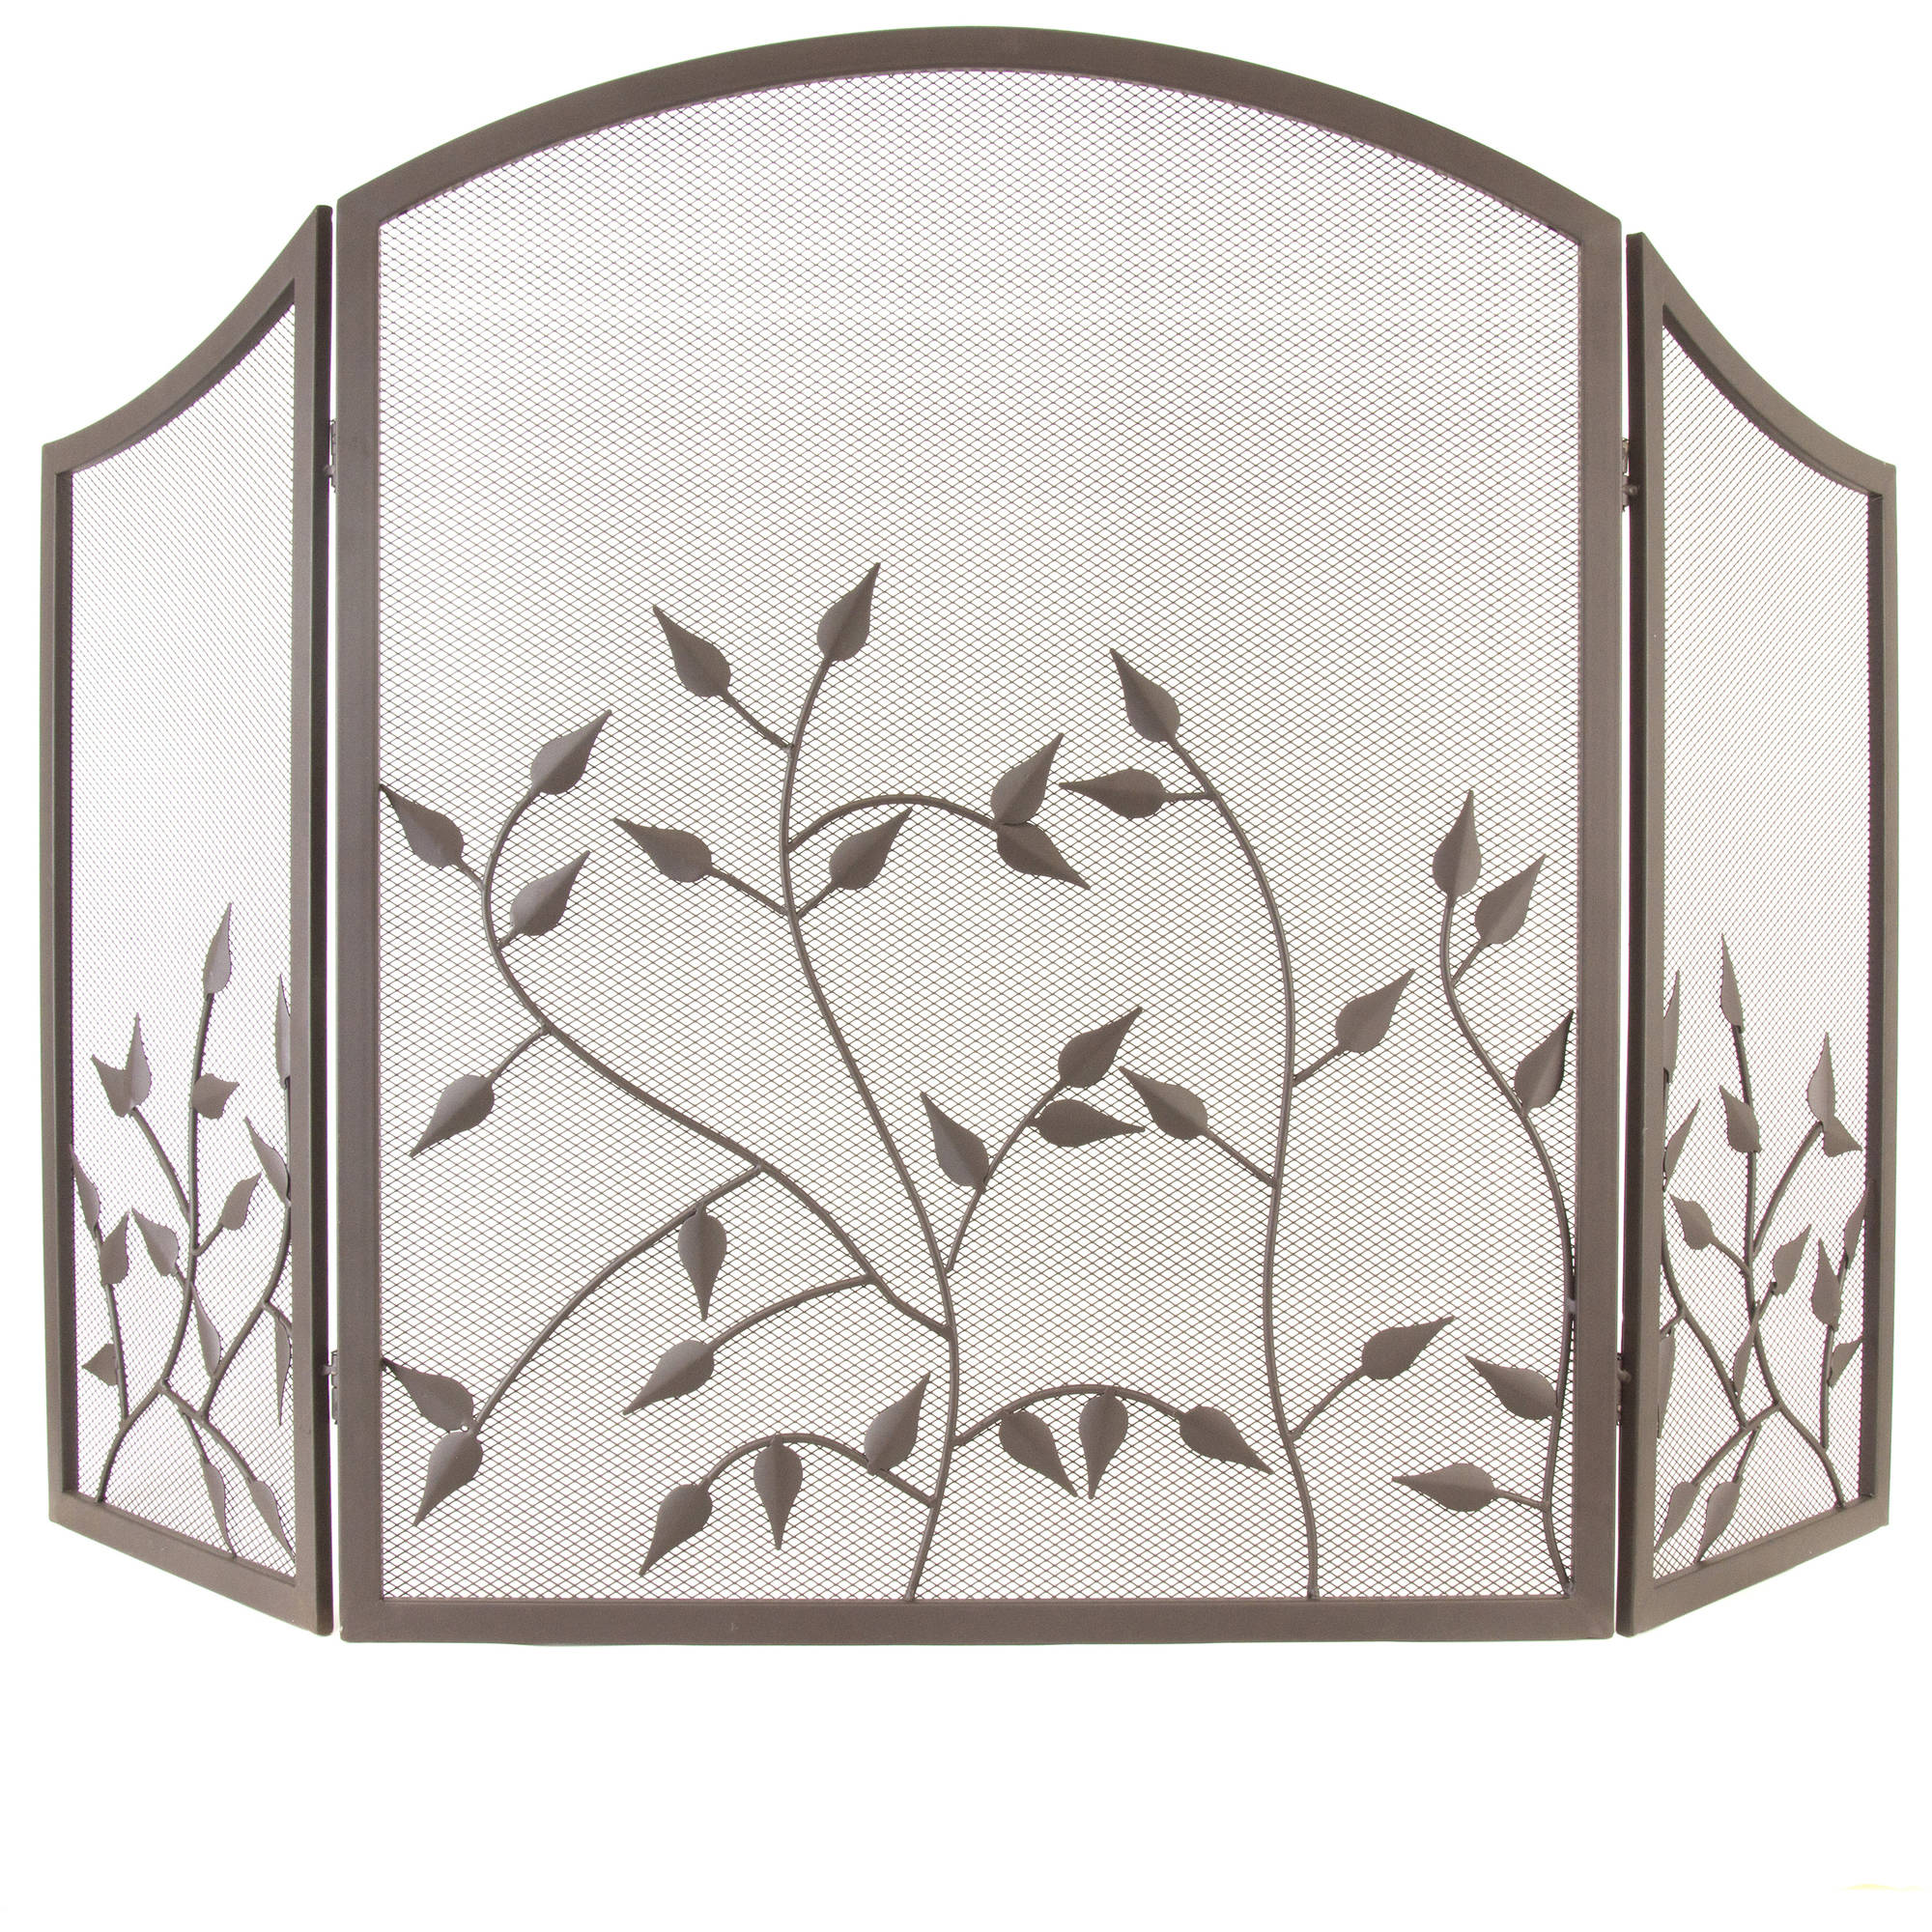 Pleasant Hearth Waverly Fireplace Screen, FA092SA